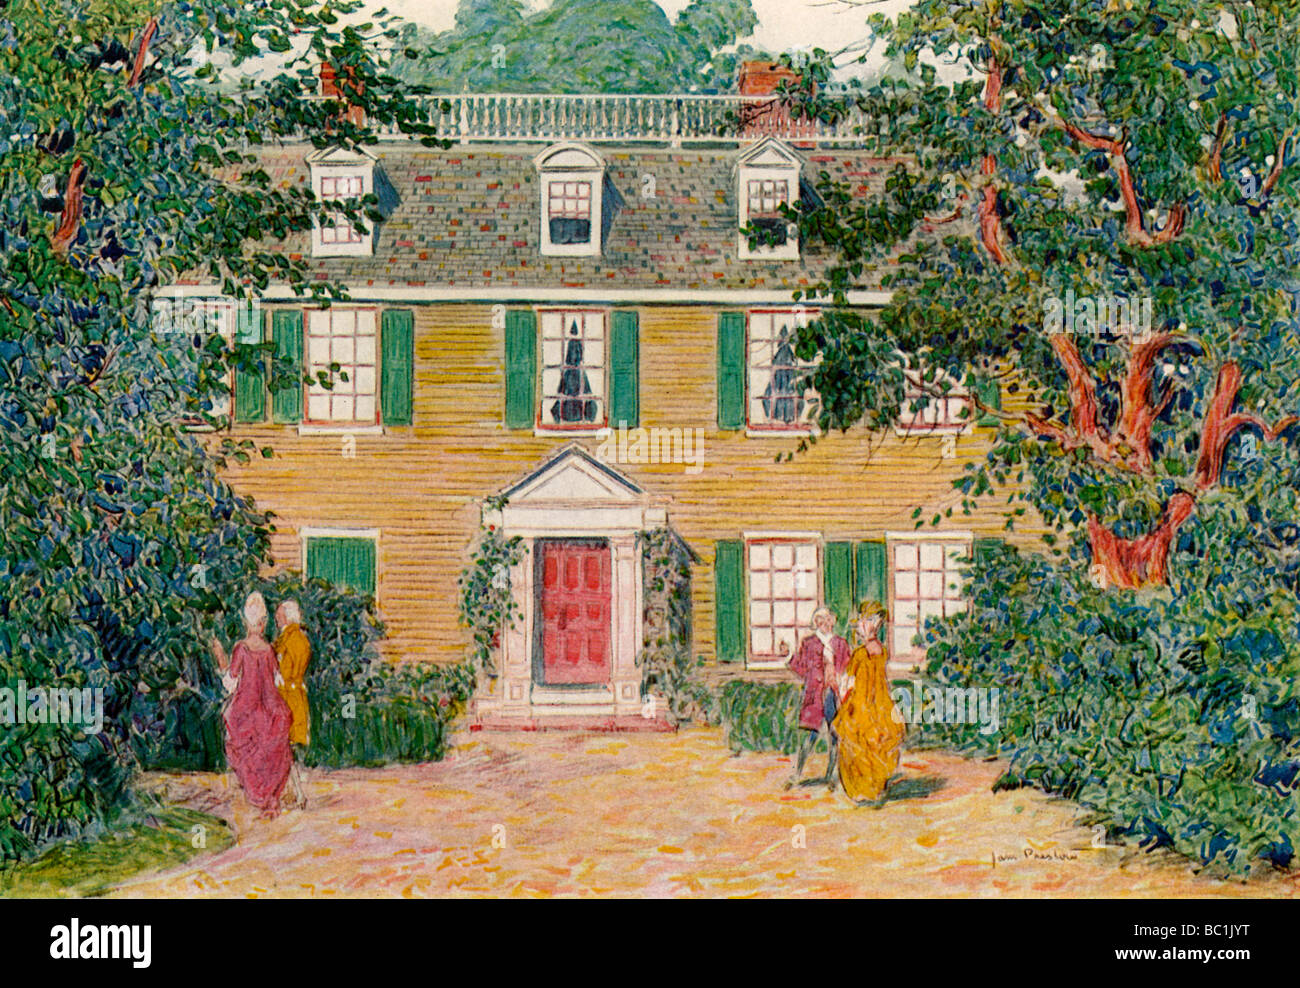 The Quincy House, New England, USA, c18th century (1921).Artist: James Preston - Stock Image